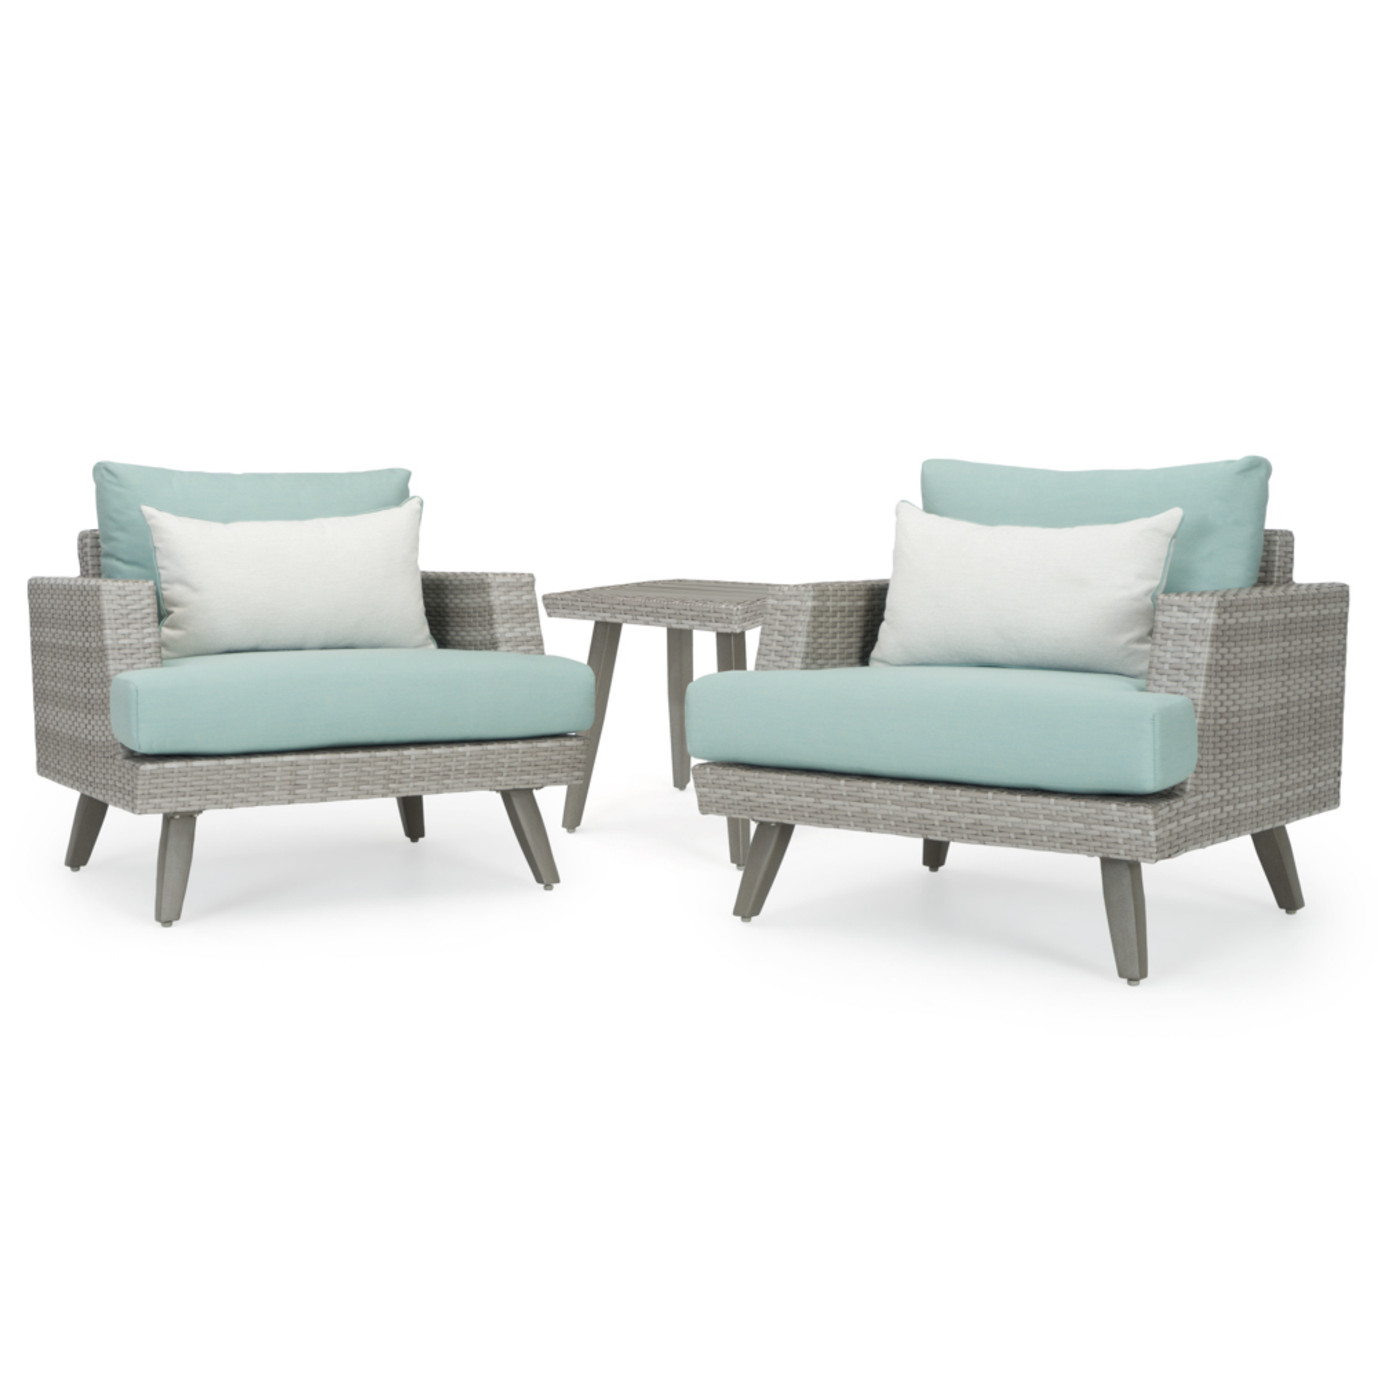 Portofino® Casual Club Chairs with Side Table - Spa Blue